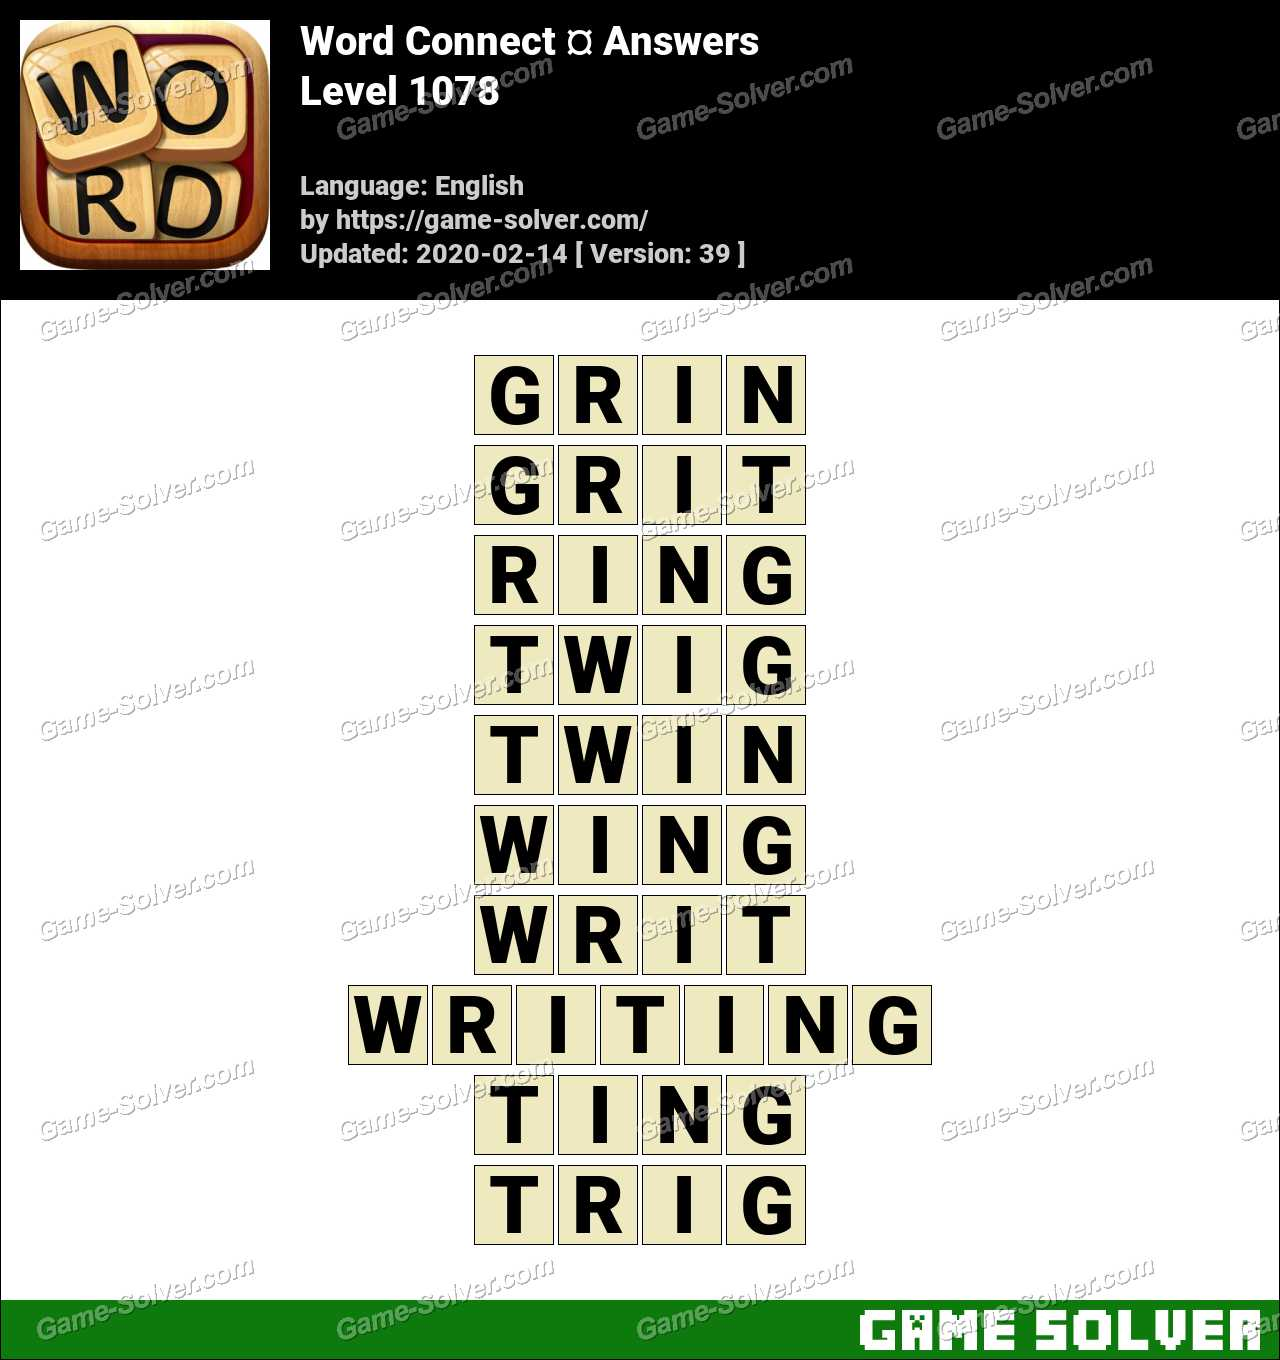 Word Connect Level 1078 Answers